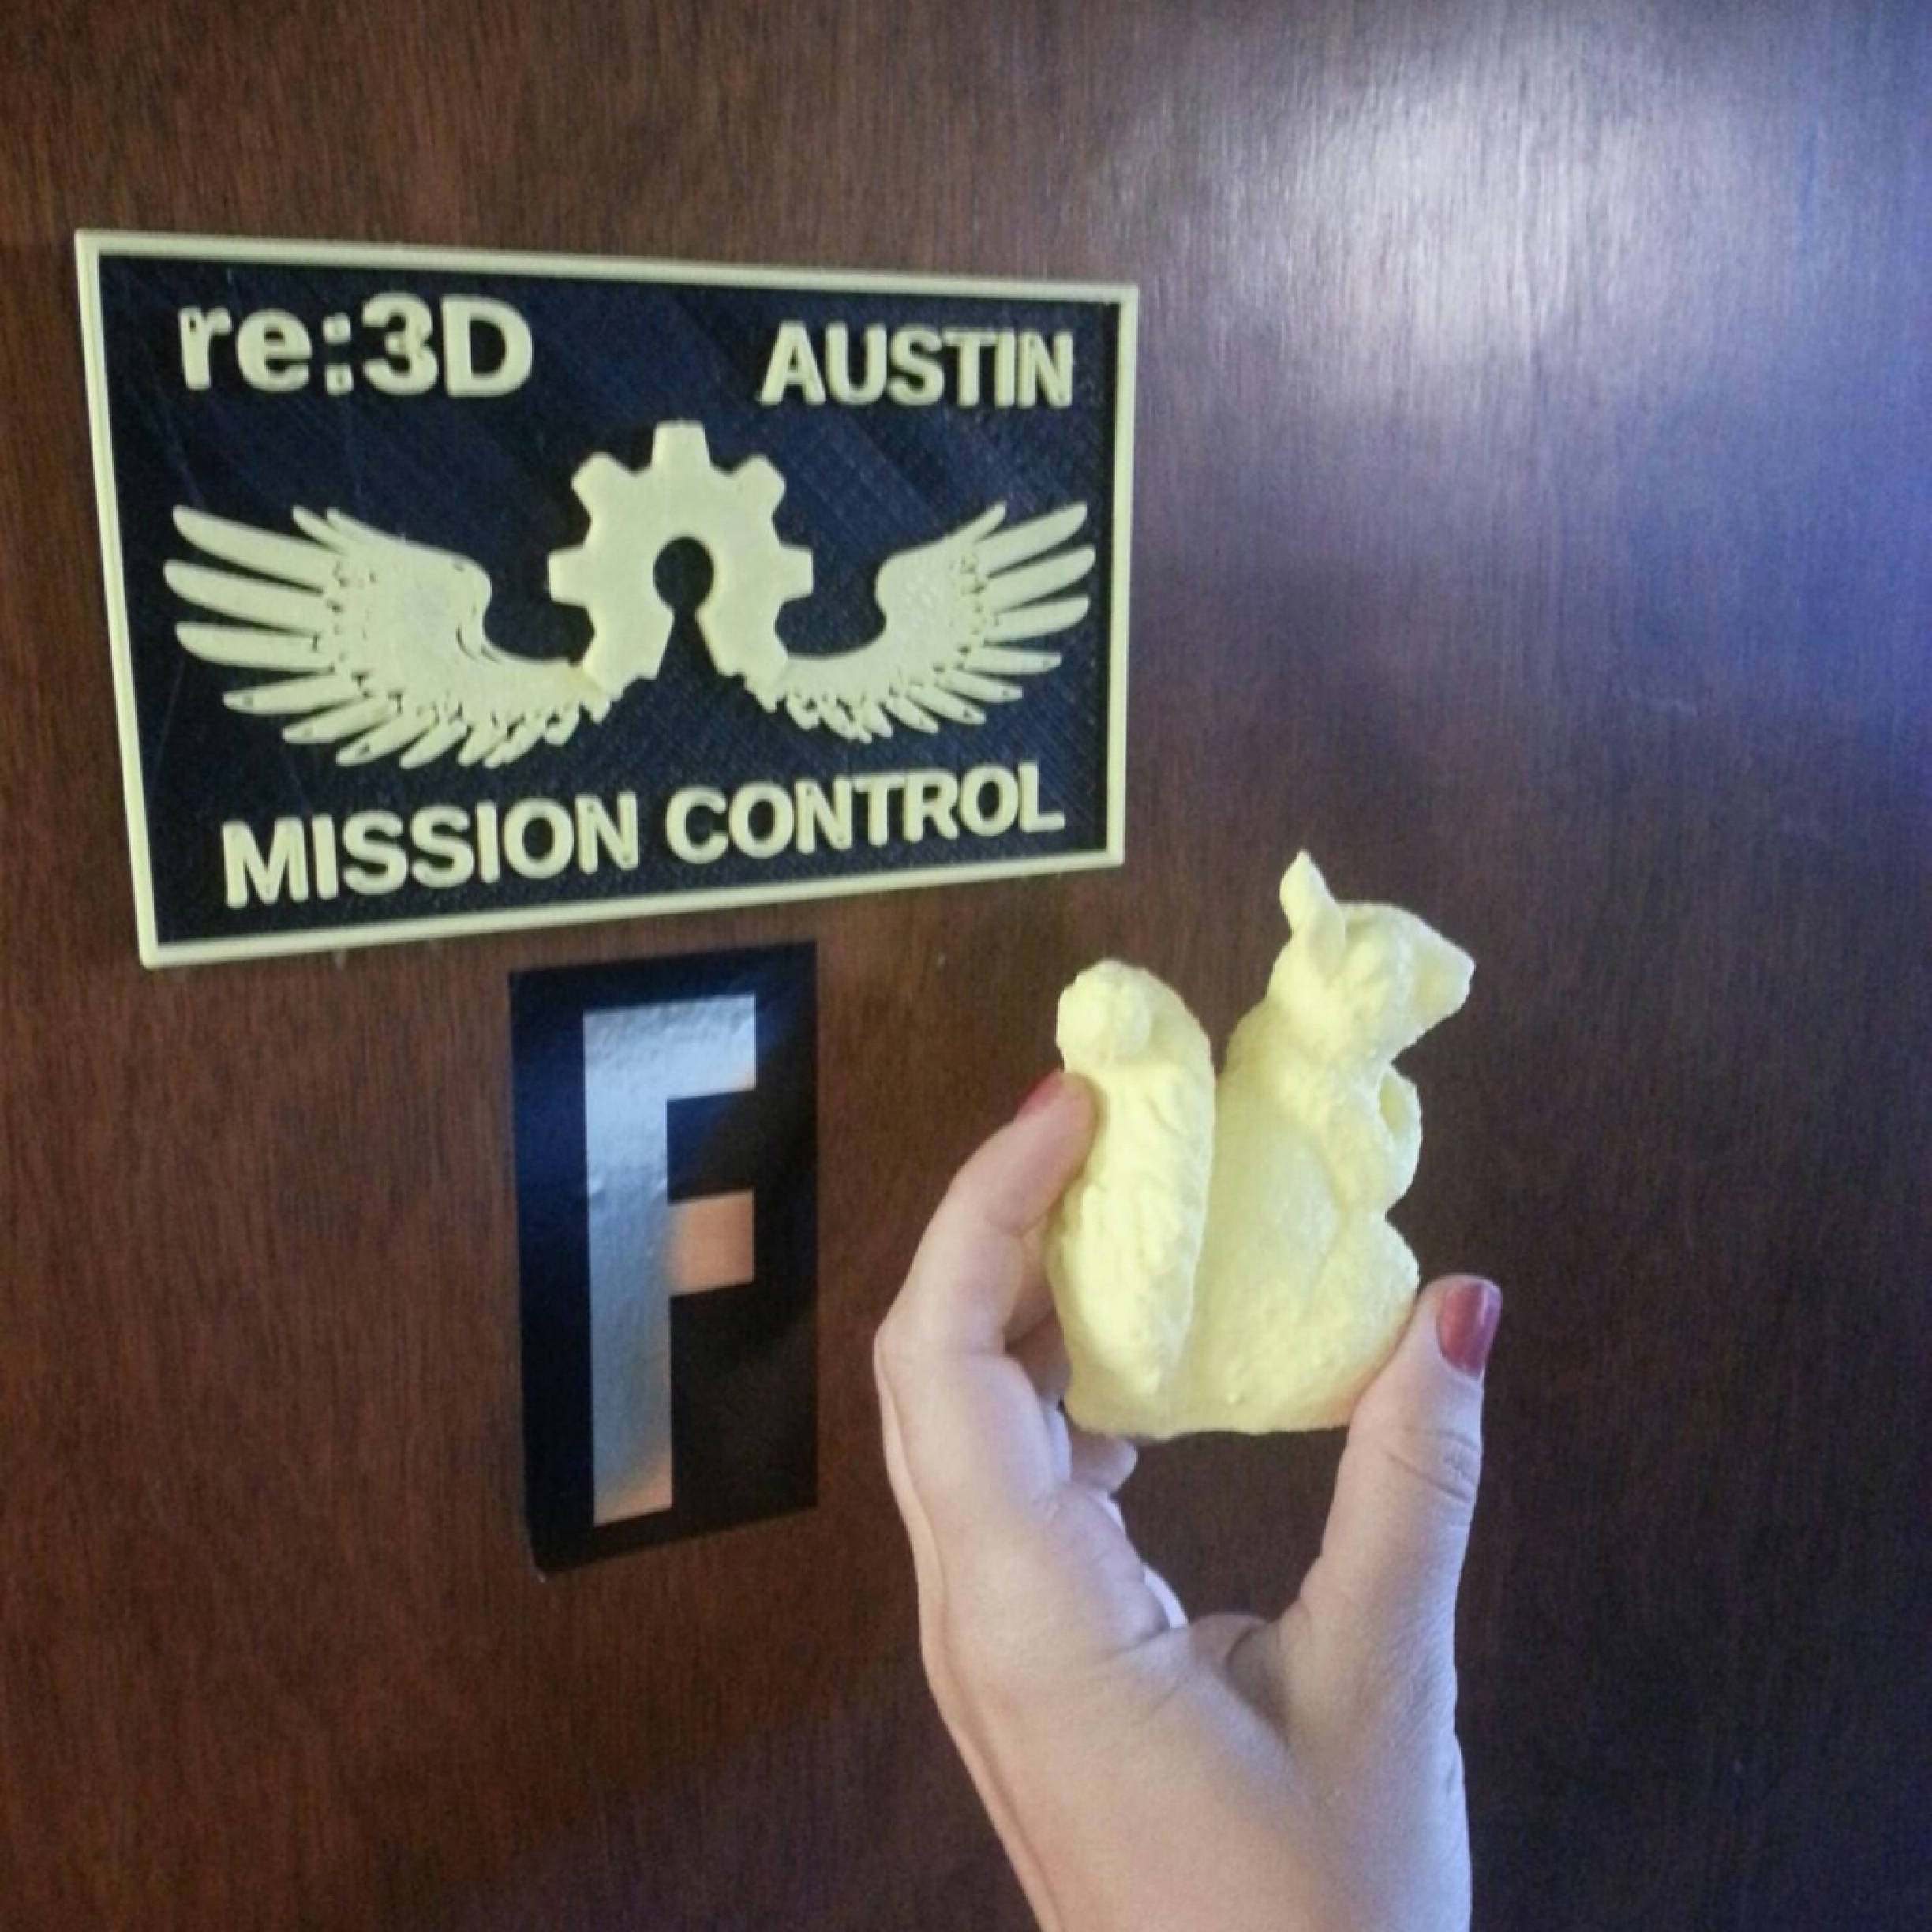 Our Austin office is christened by Mike's 3D printed guardian squirrel